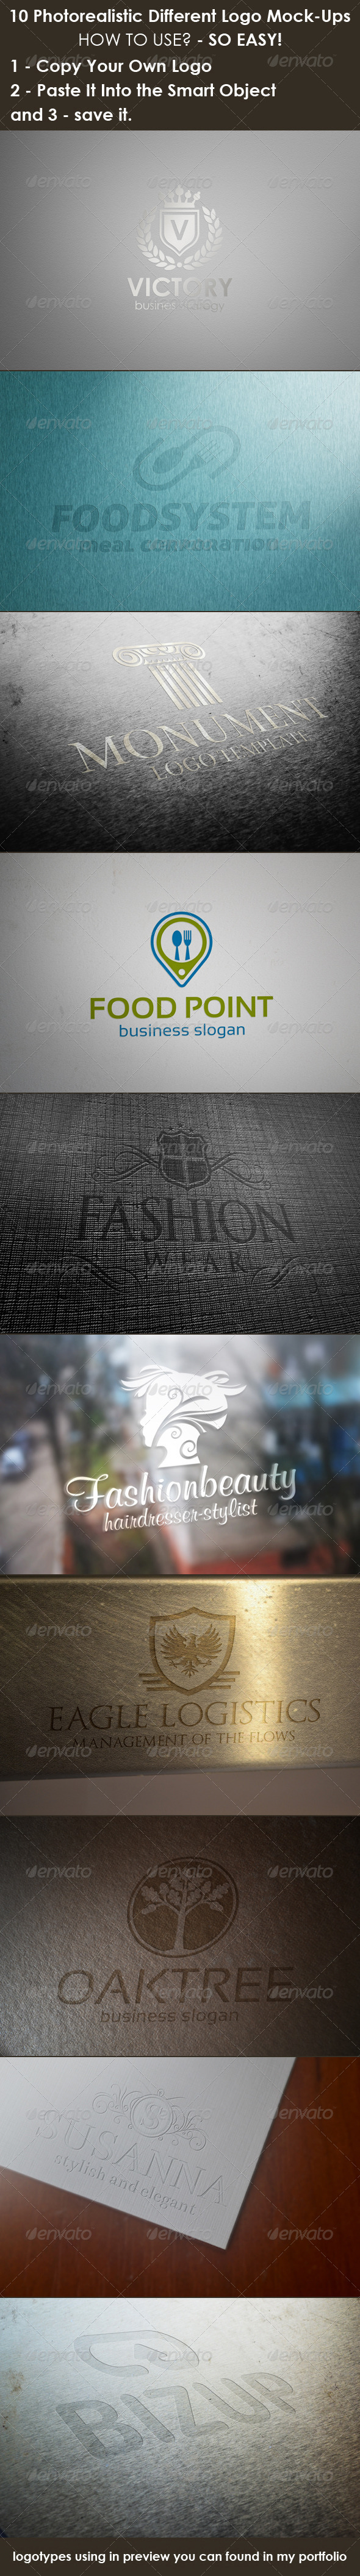 GraphicRiver 10 Photorealistic Different Logo Mock-Ups 6282260